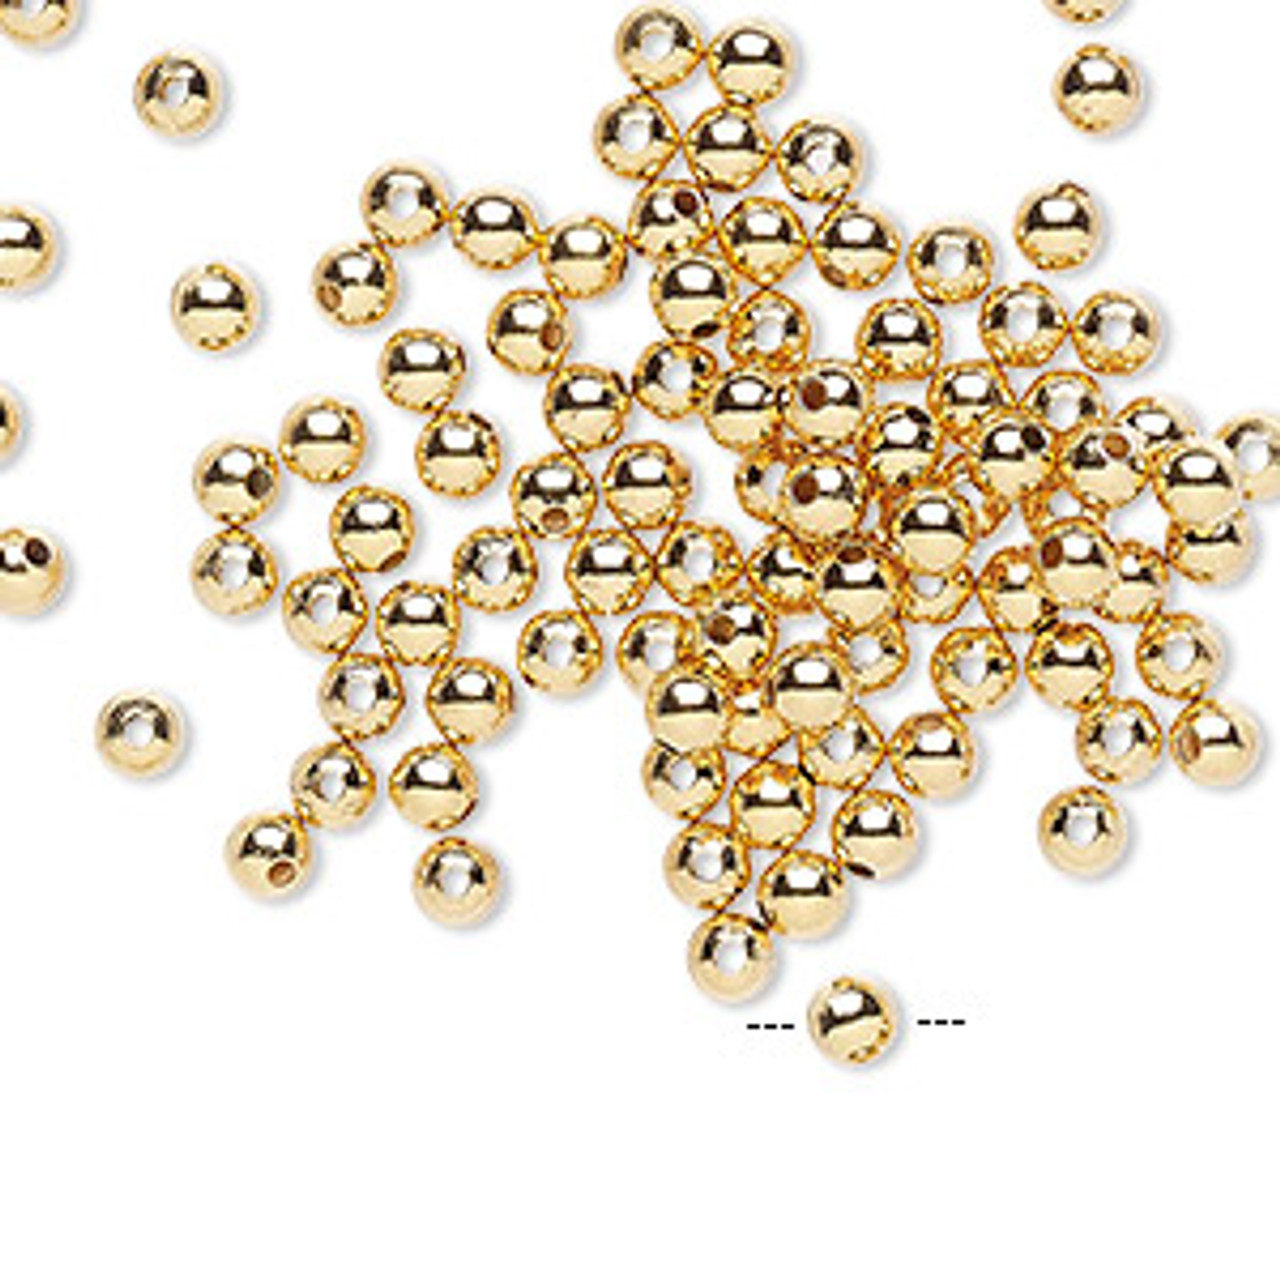 3mm Gold Plated Metal Round (50 Pack)